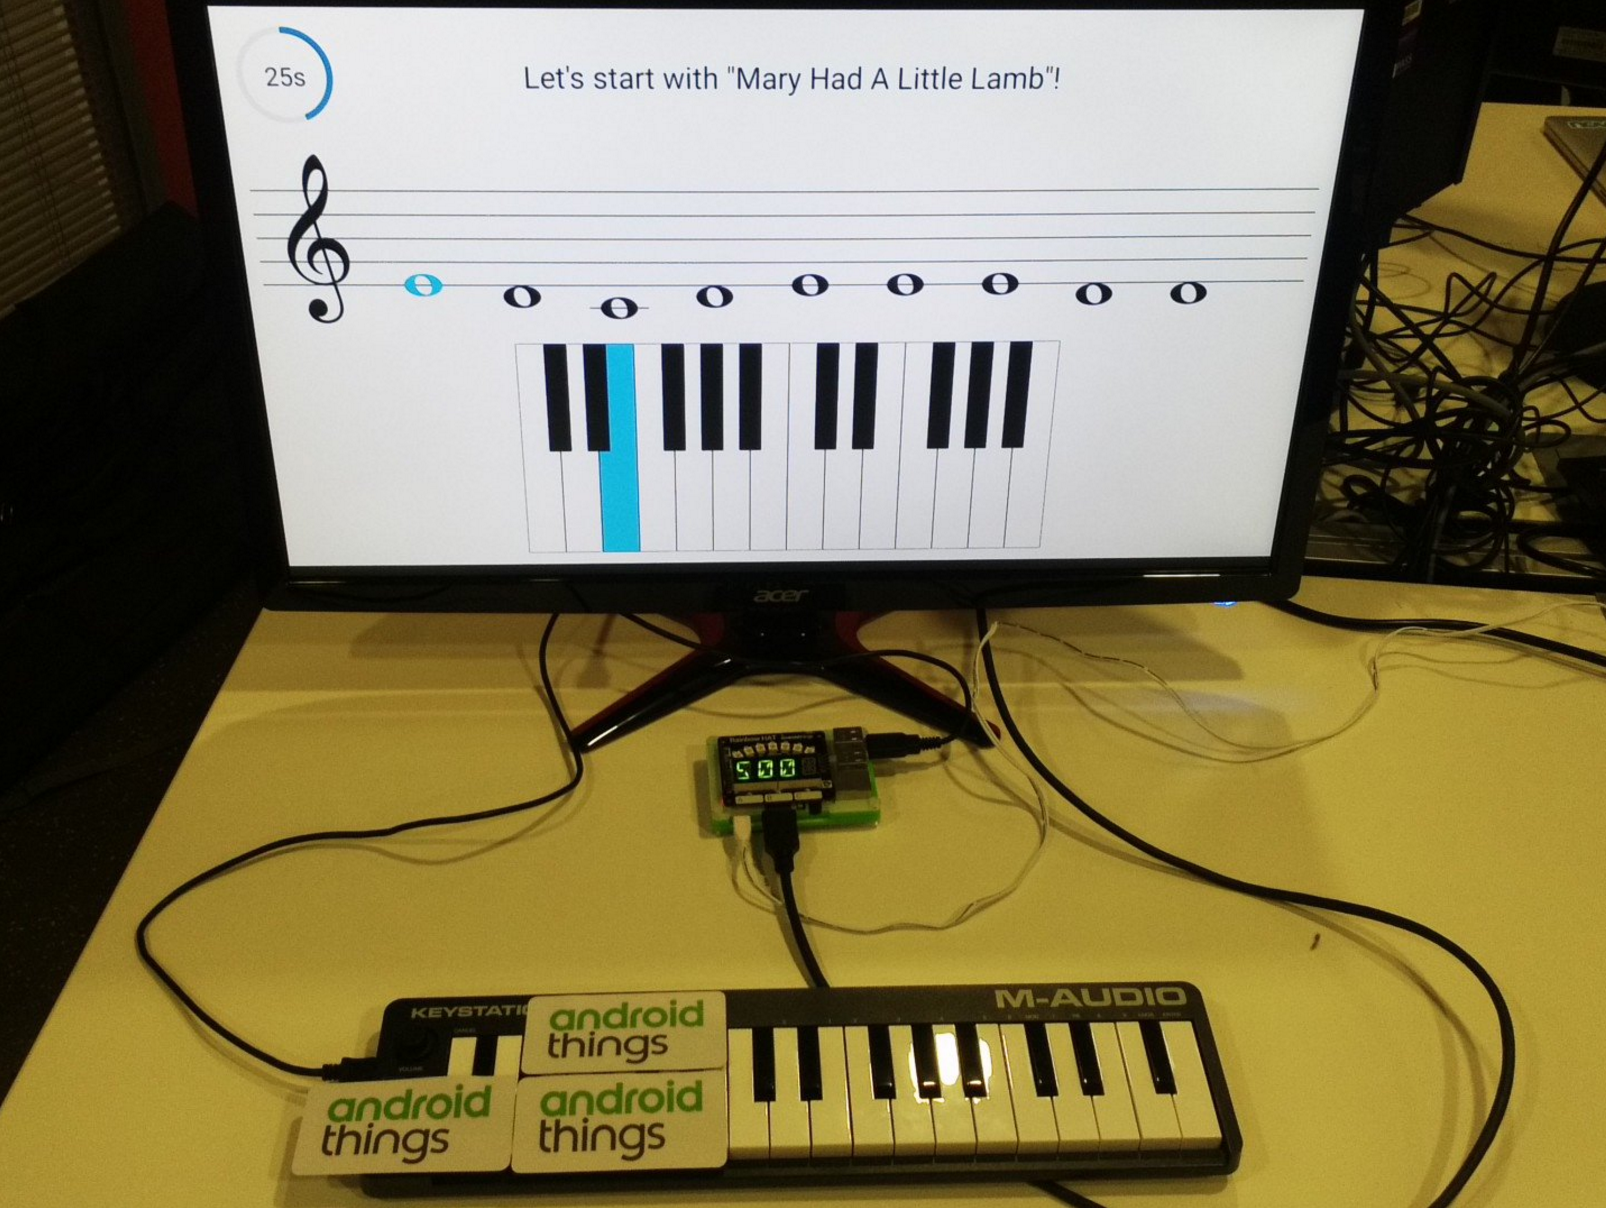 piano hero: a physical piano connected to a Raspberry Pi device connected to a TV showing some music notes on screen